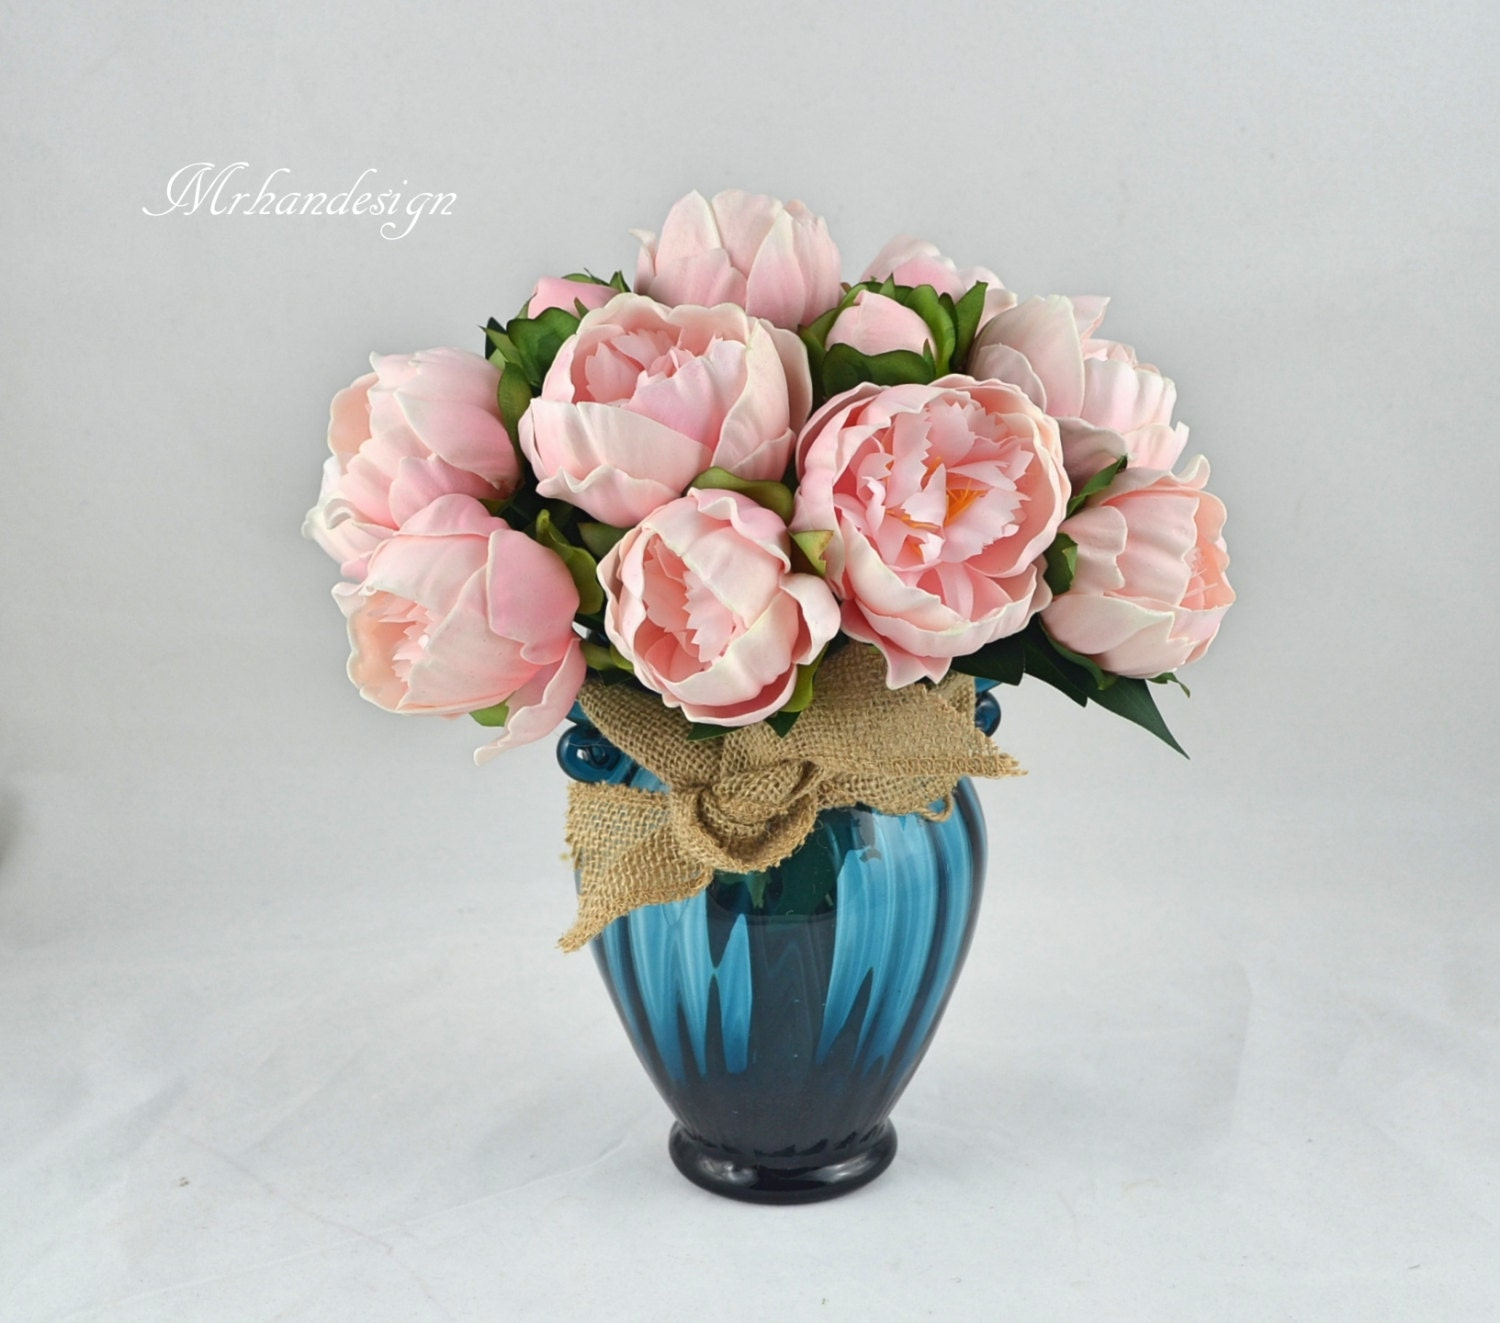 Pink Peony Real Touch Flowers Wedding Centerpieces in Vase